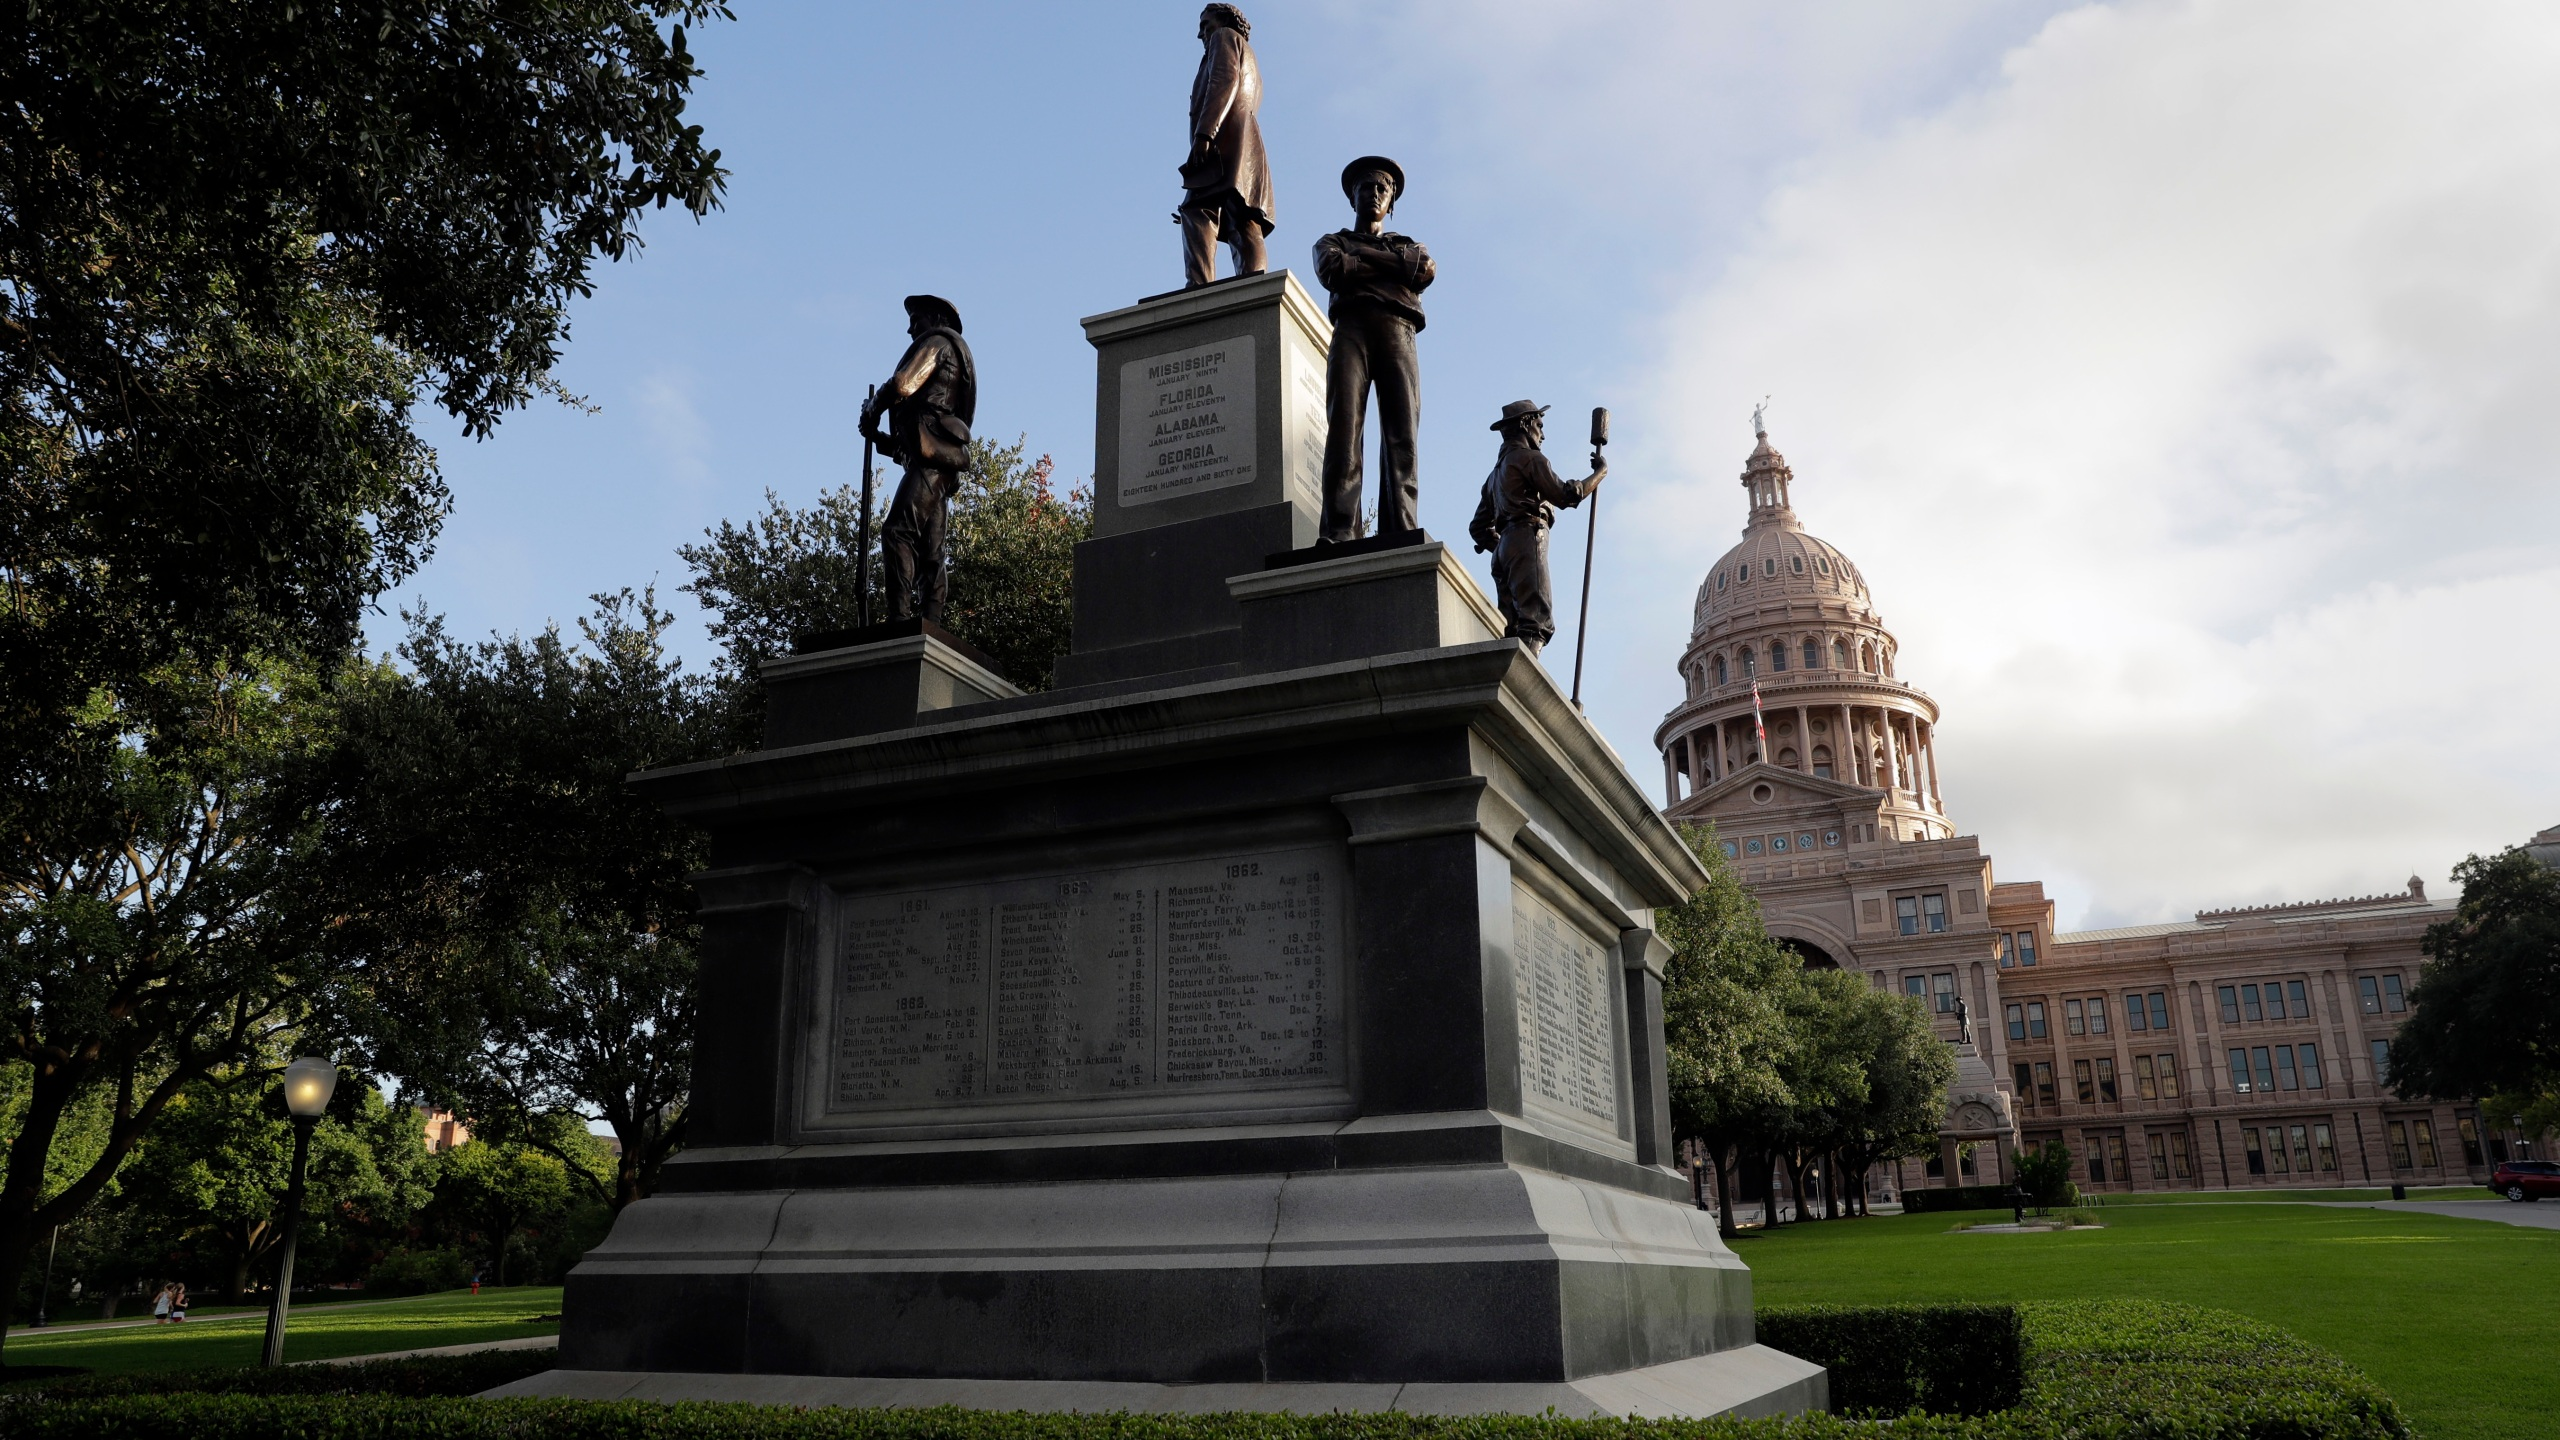 In this Aug. 21, 2017 file photo, the Texas State Capitol Confederate Monument stands on the south lawn in Austin, Texas. As a racial justice reckoning continues to inform conversations across the country, lawmakers nationwide are struggling to find solutions to thousands of icons saluting controversial historical figures. (AP Photo/Eric Gay, File)